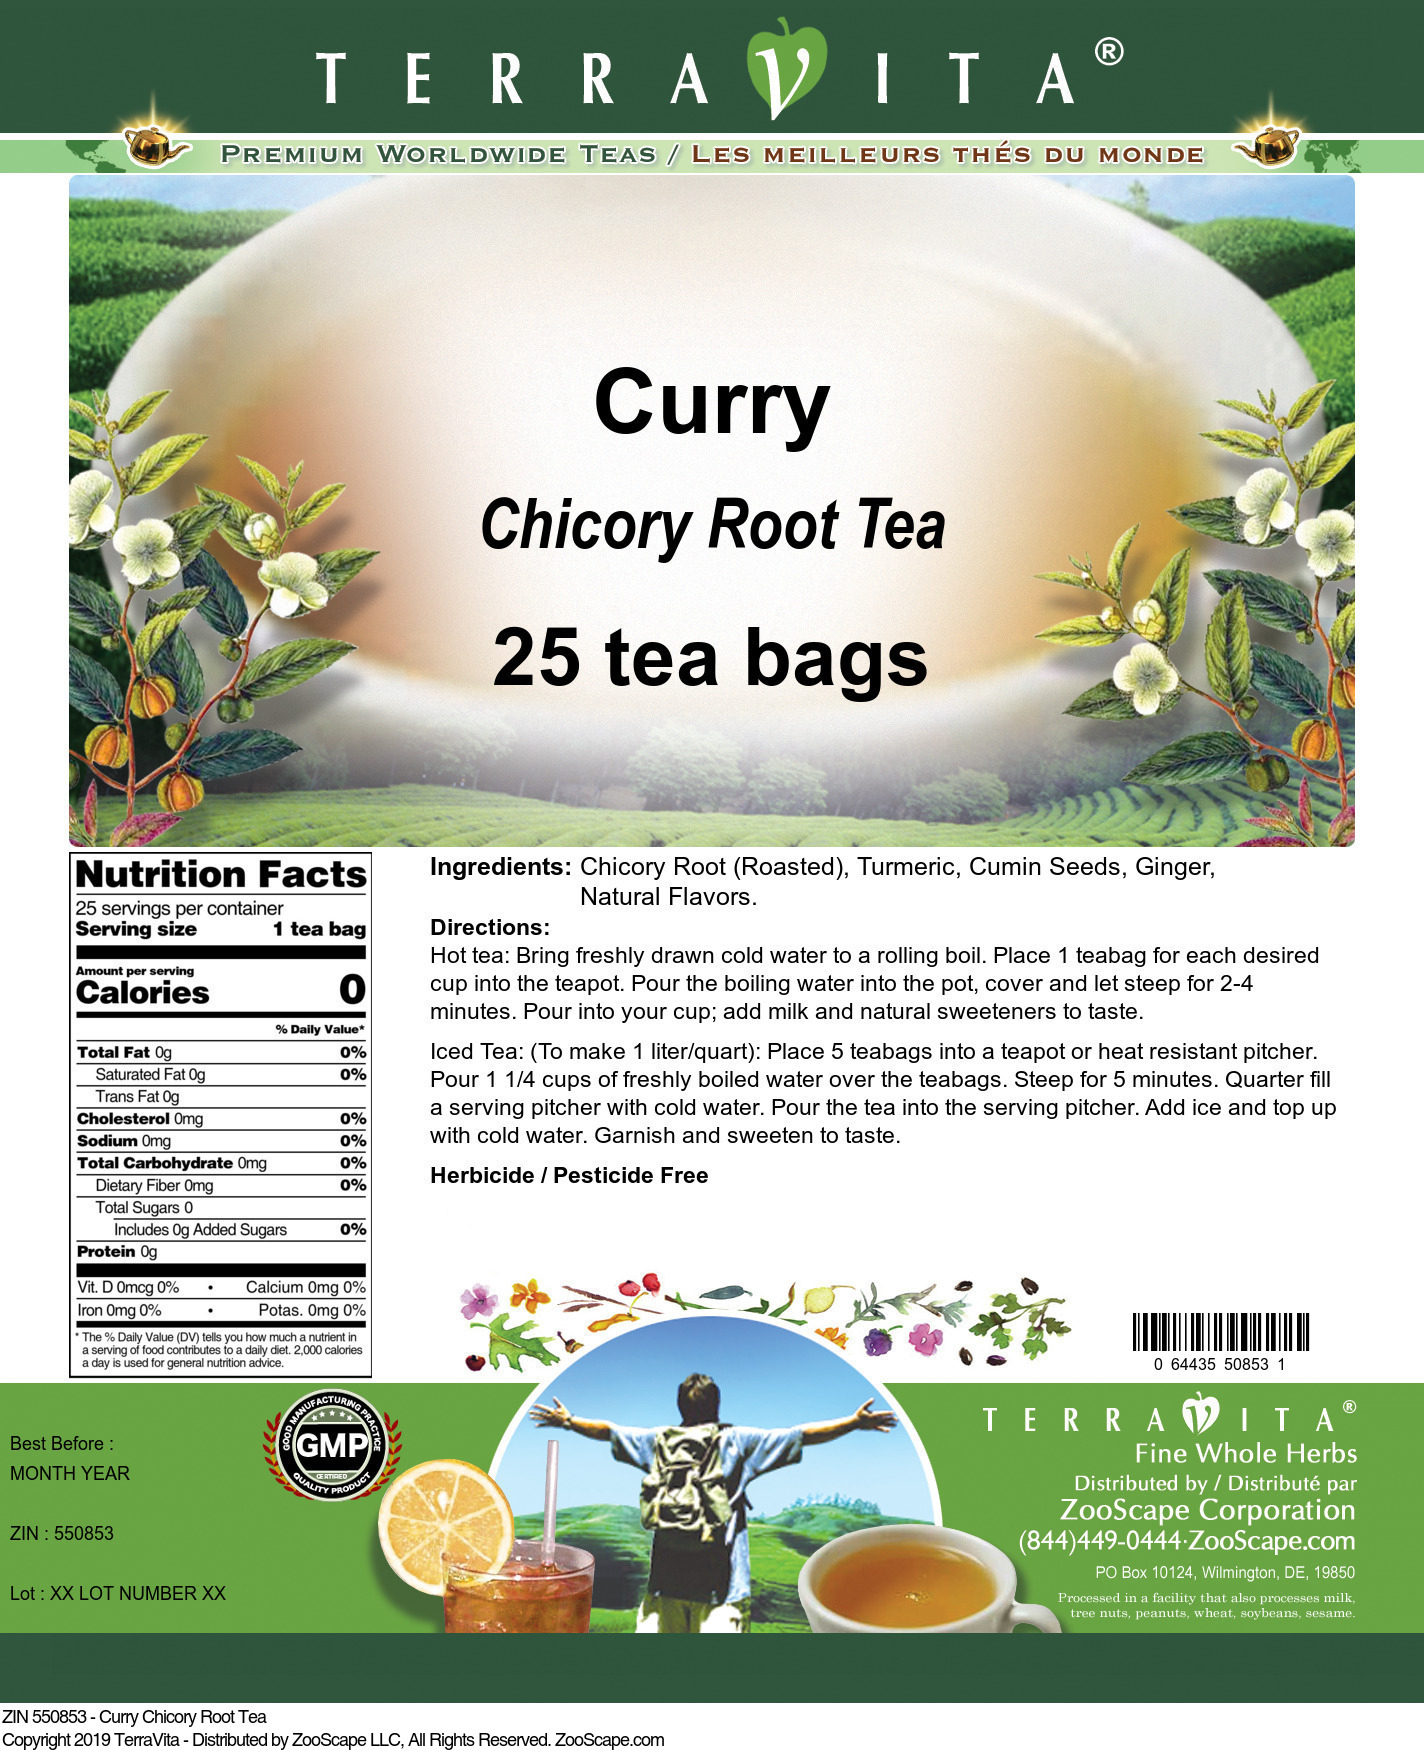 Curry Chicory Root Tea